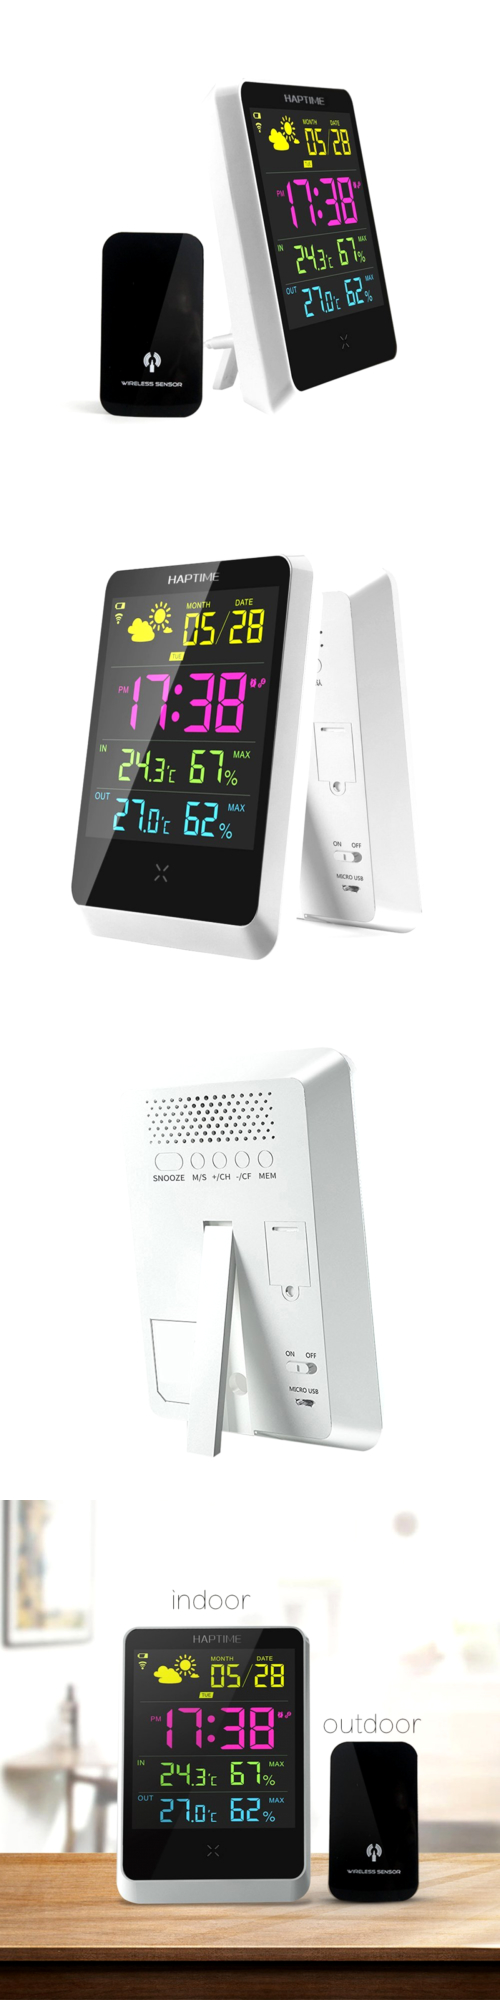 Weather Meters: Digital Weather Station Wireless Thermometer ...